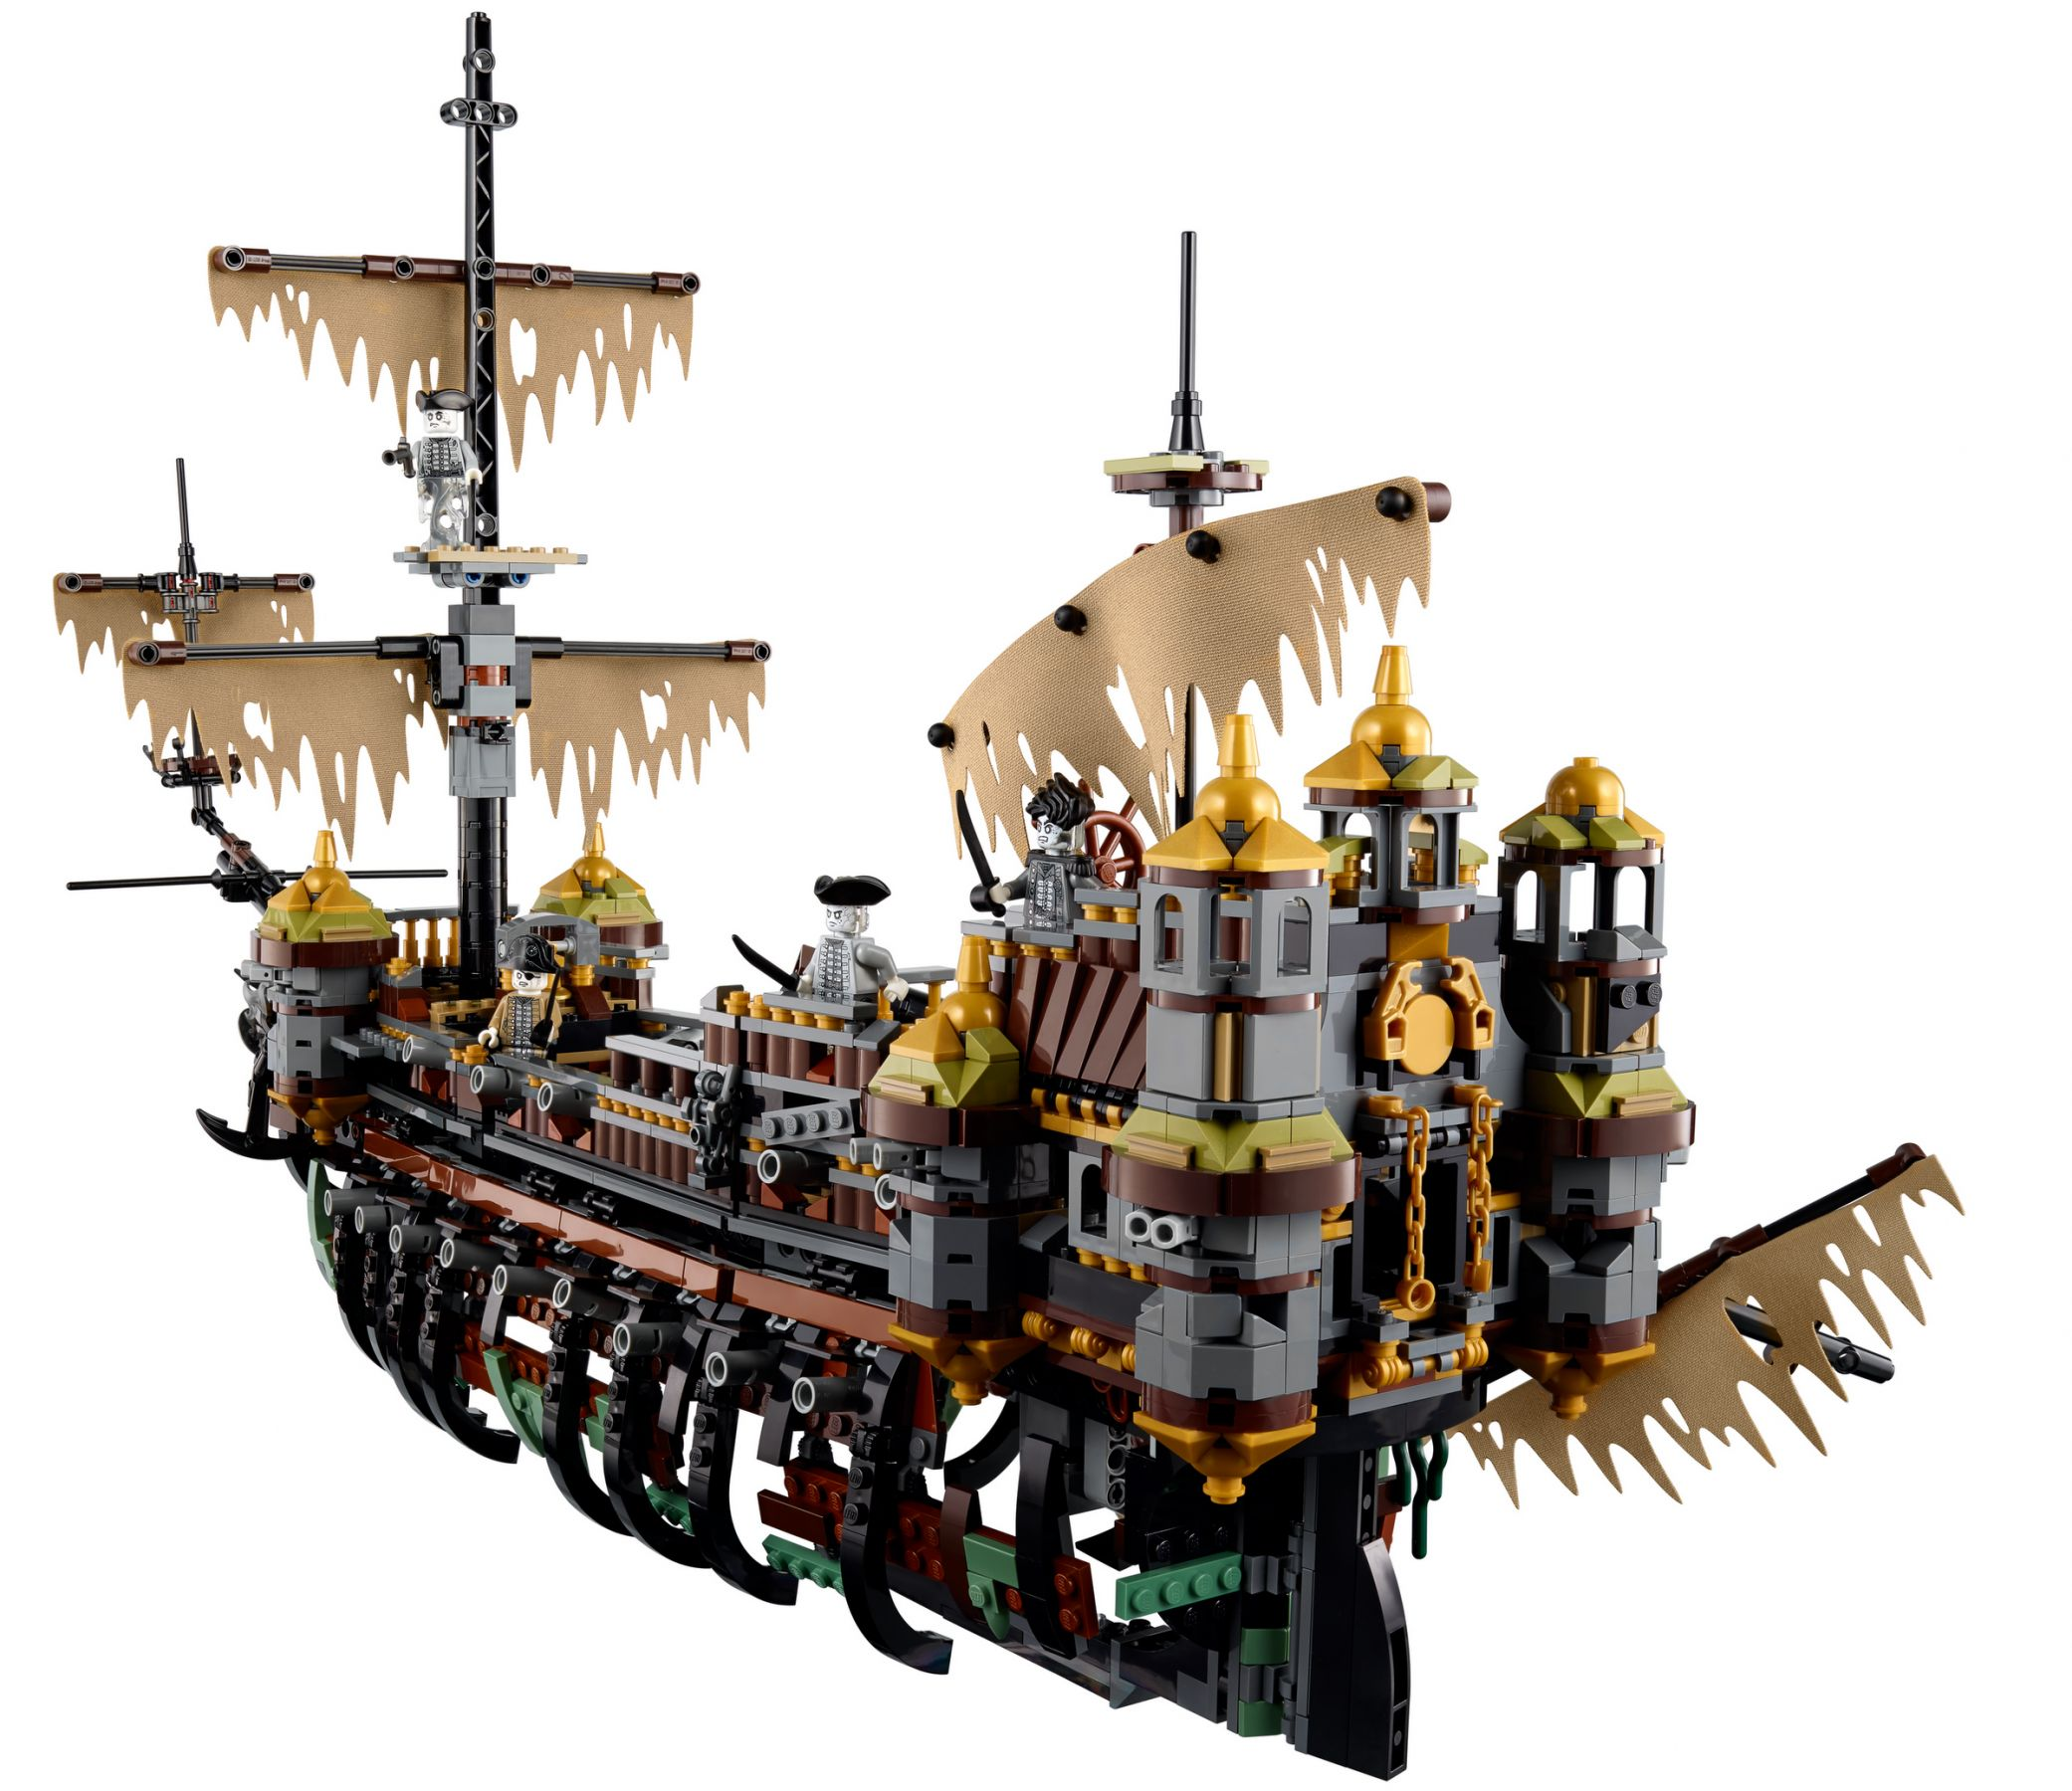 LEGO Advanced Models 71042 Silent Mary LEGO_71042_alt2.jpg